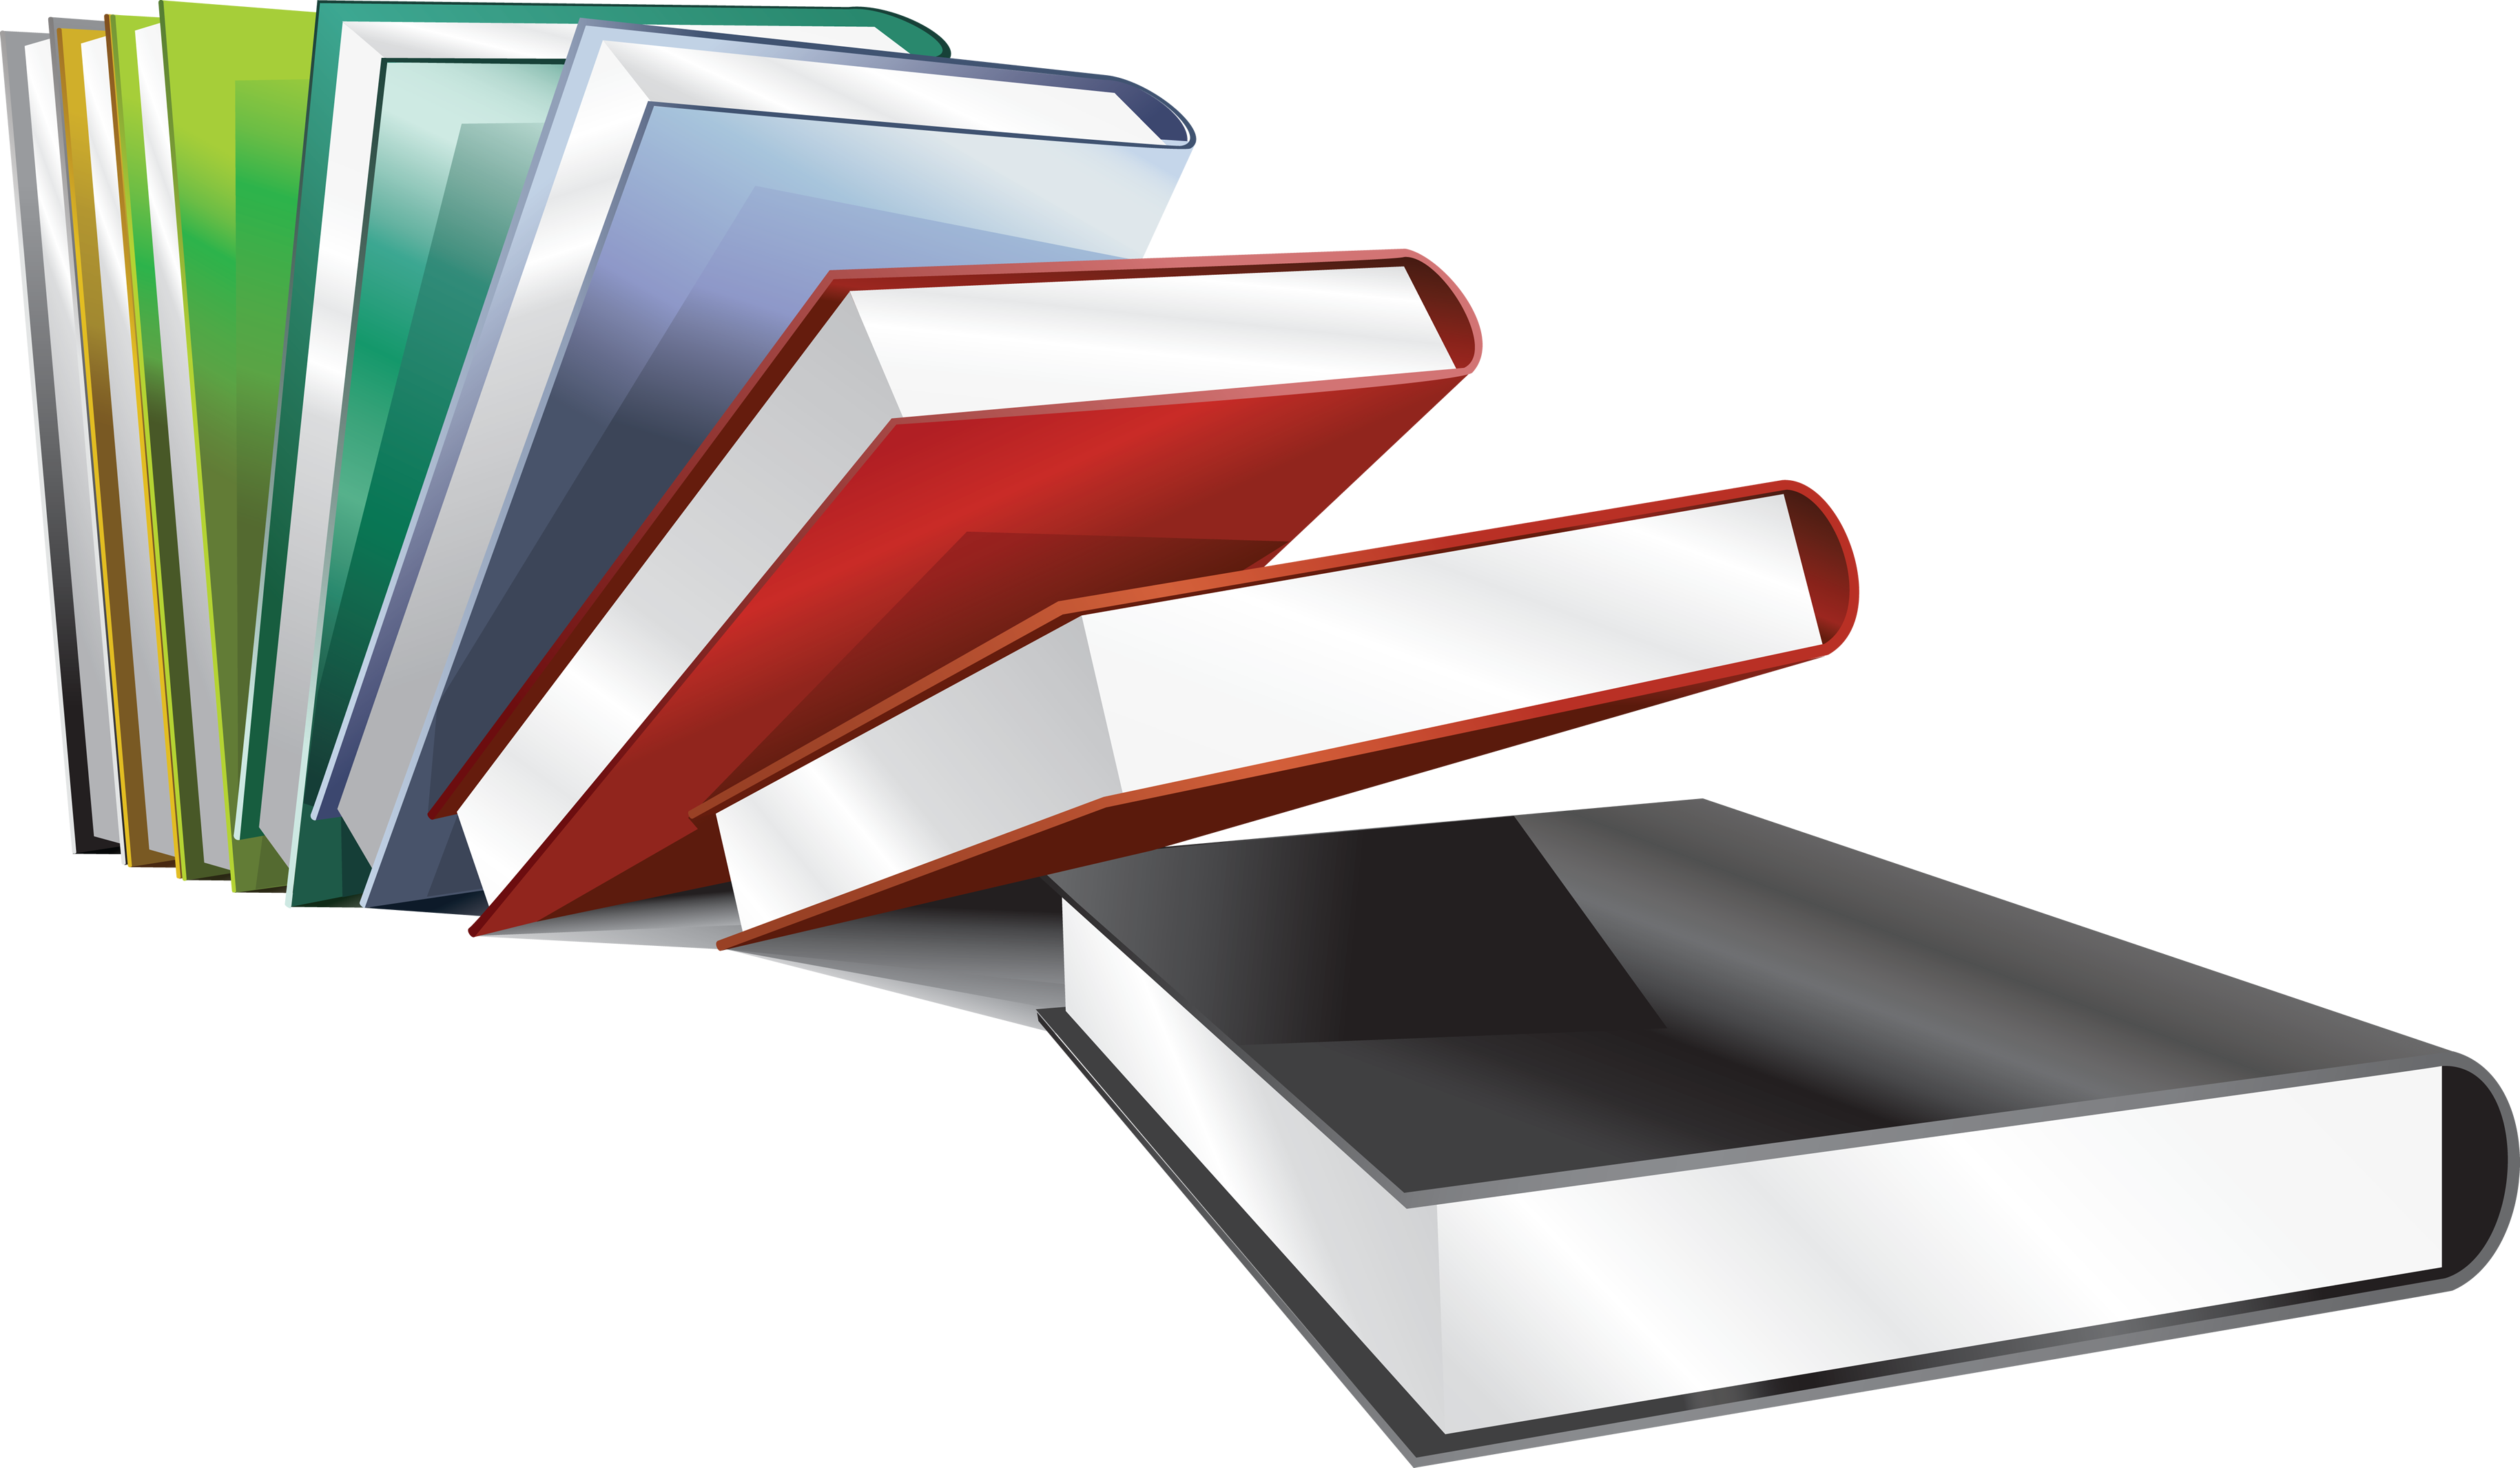 Books Png Image With Transparency Background   Books Png Image With